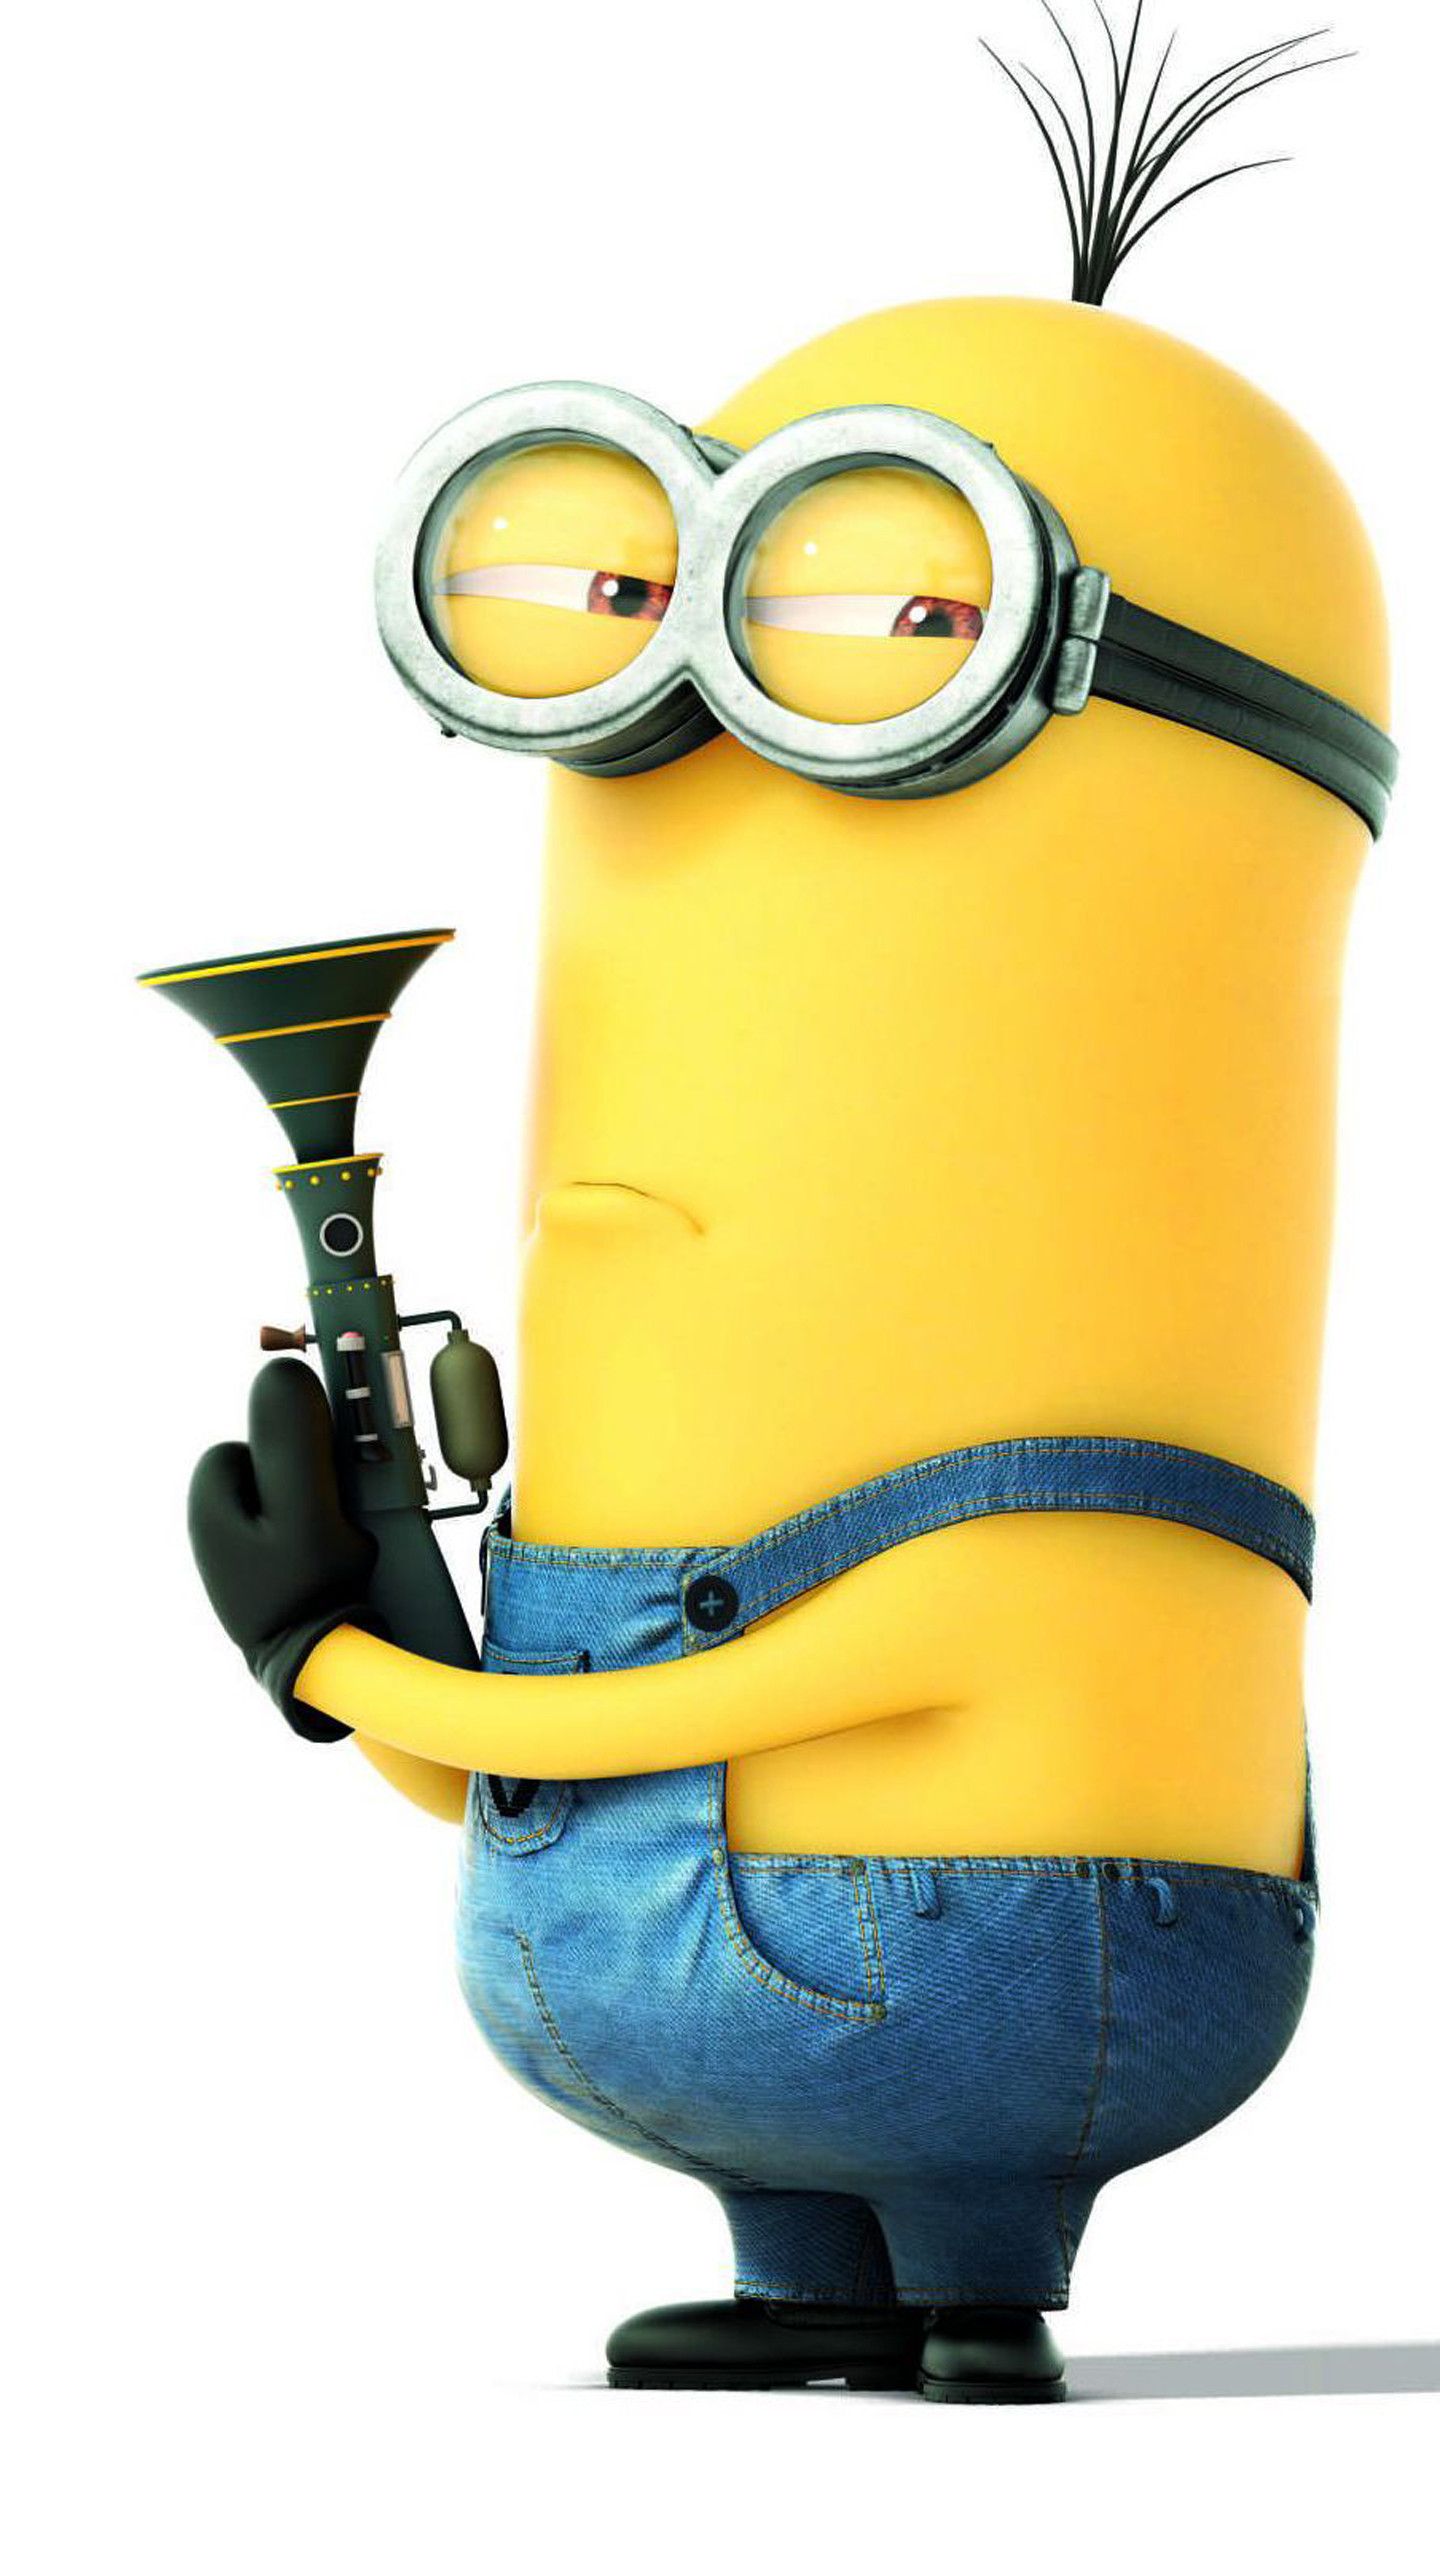 Live Minions Wallpaper 70 Images